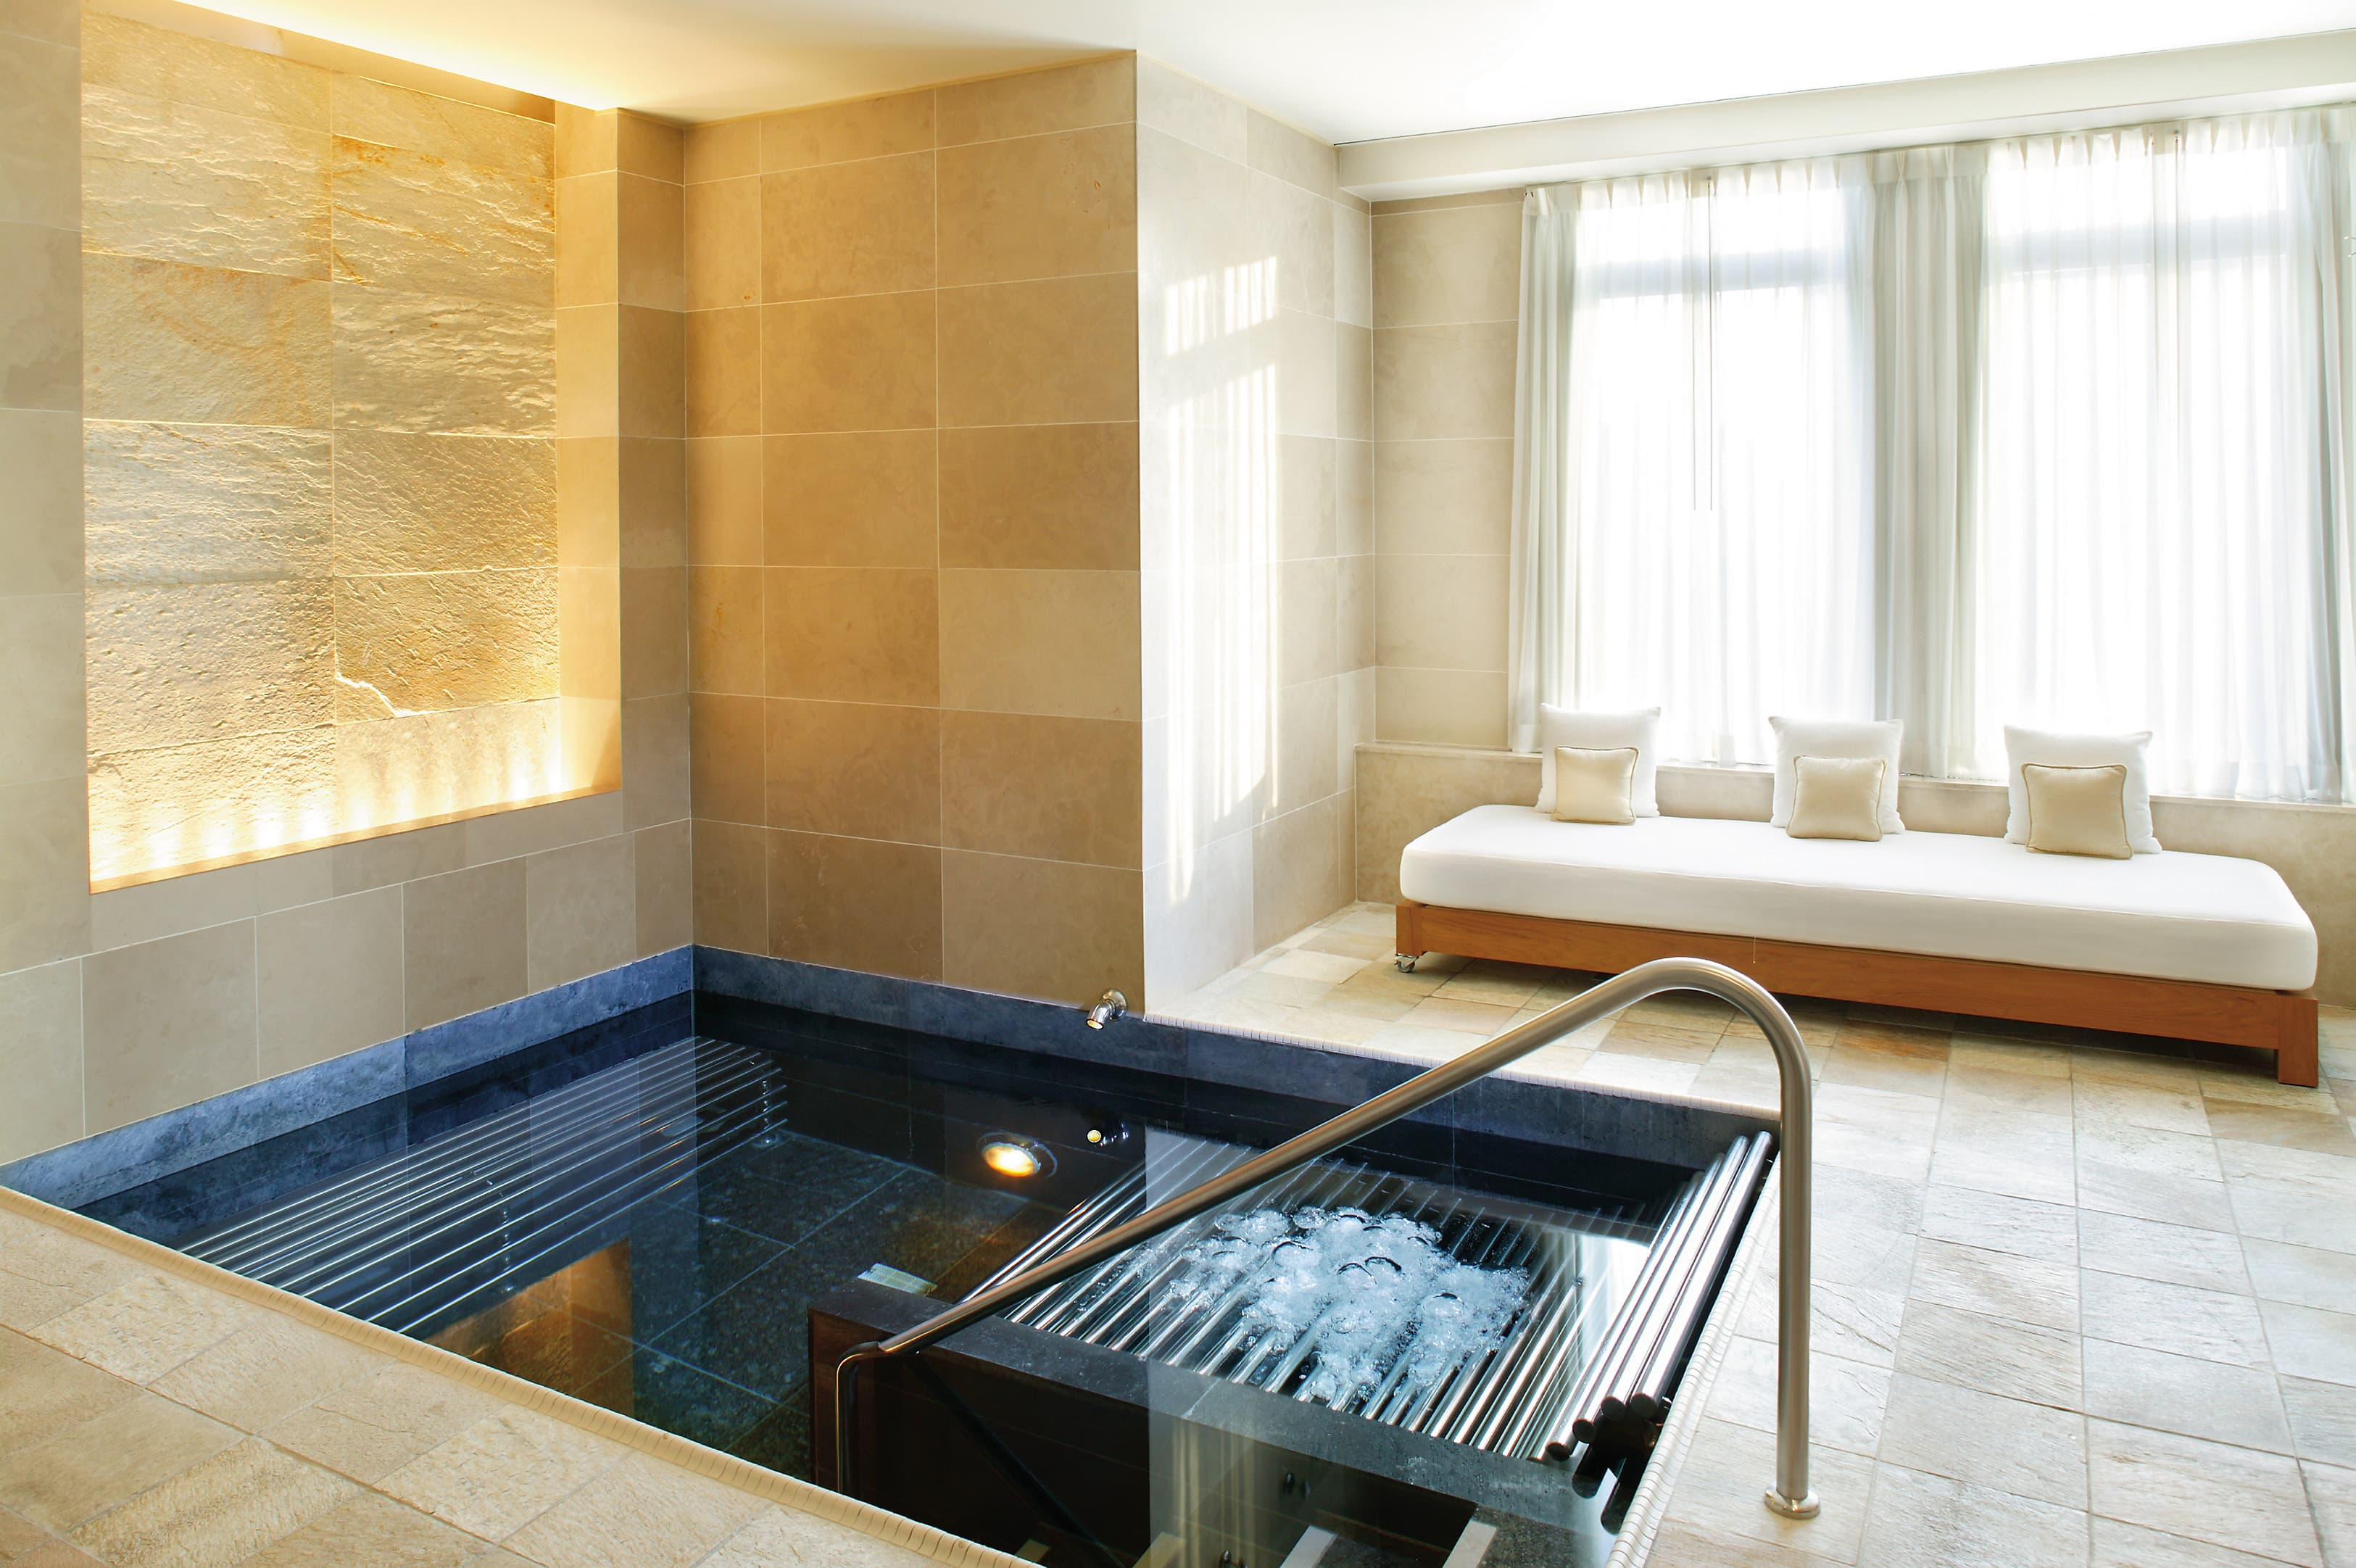 Home Spa Design Ideas: New York Hotel Photo Gallery